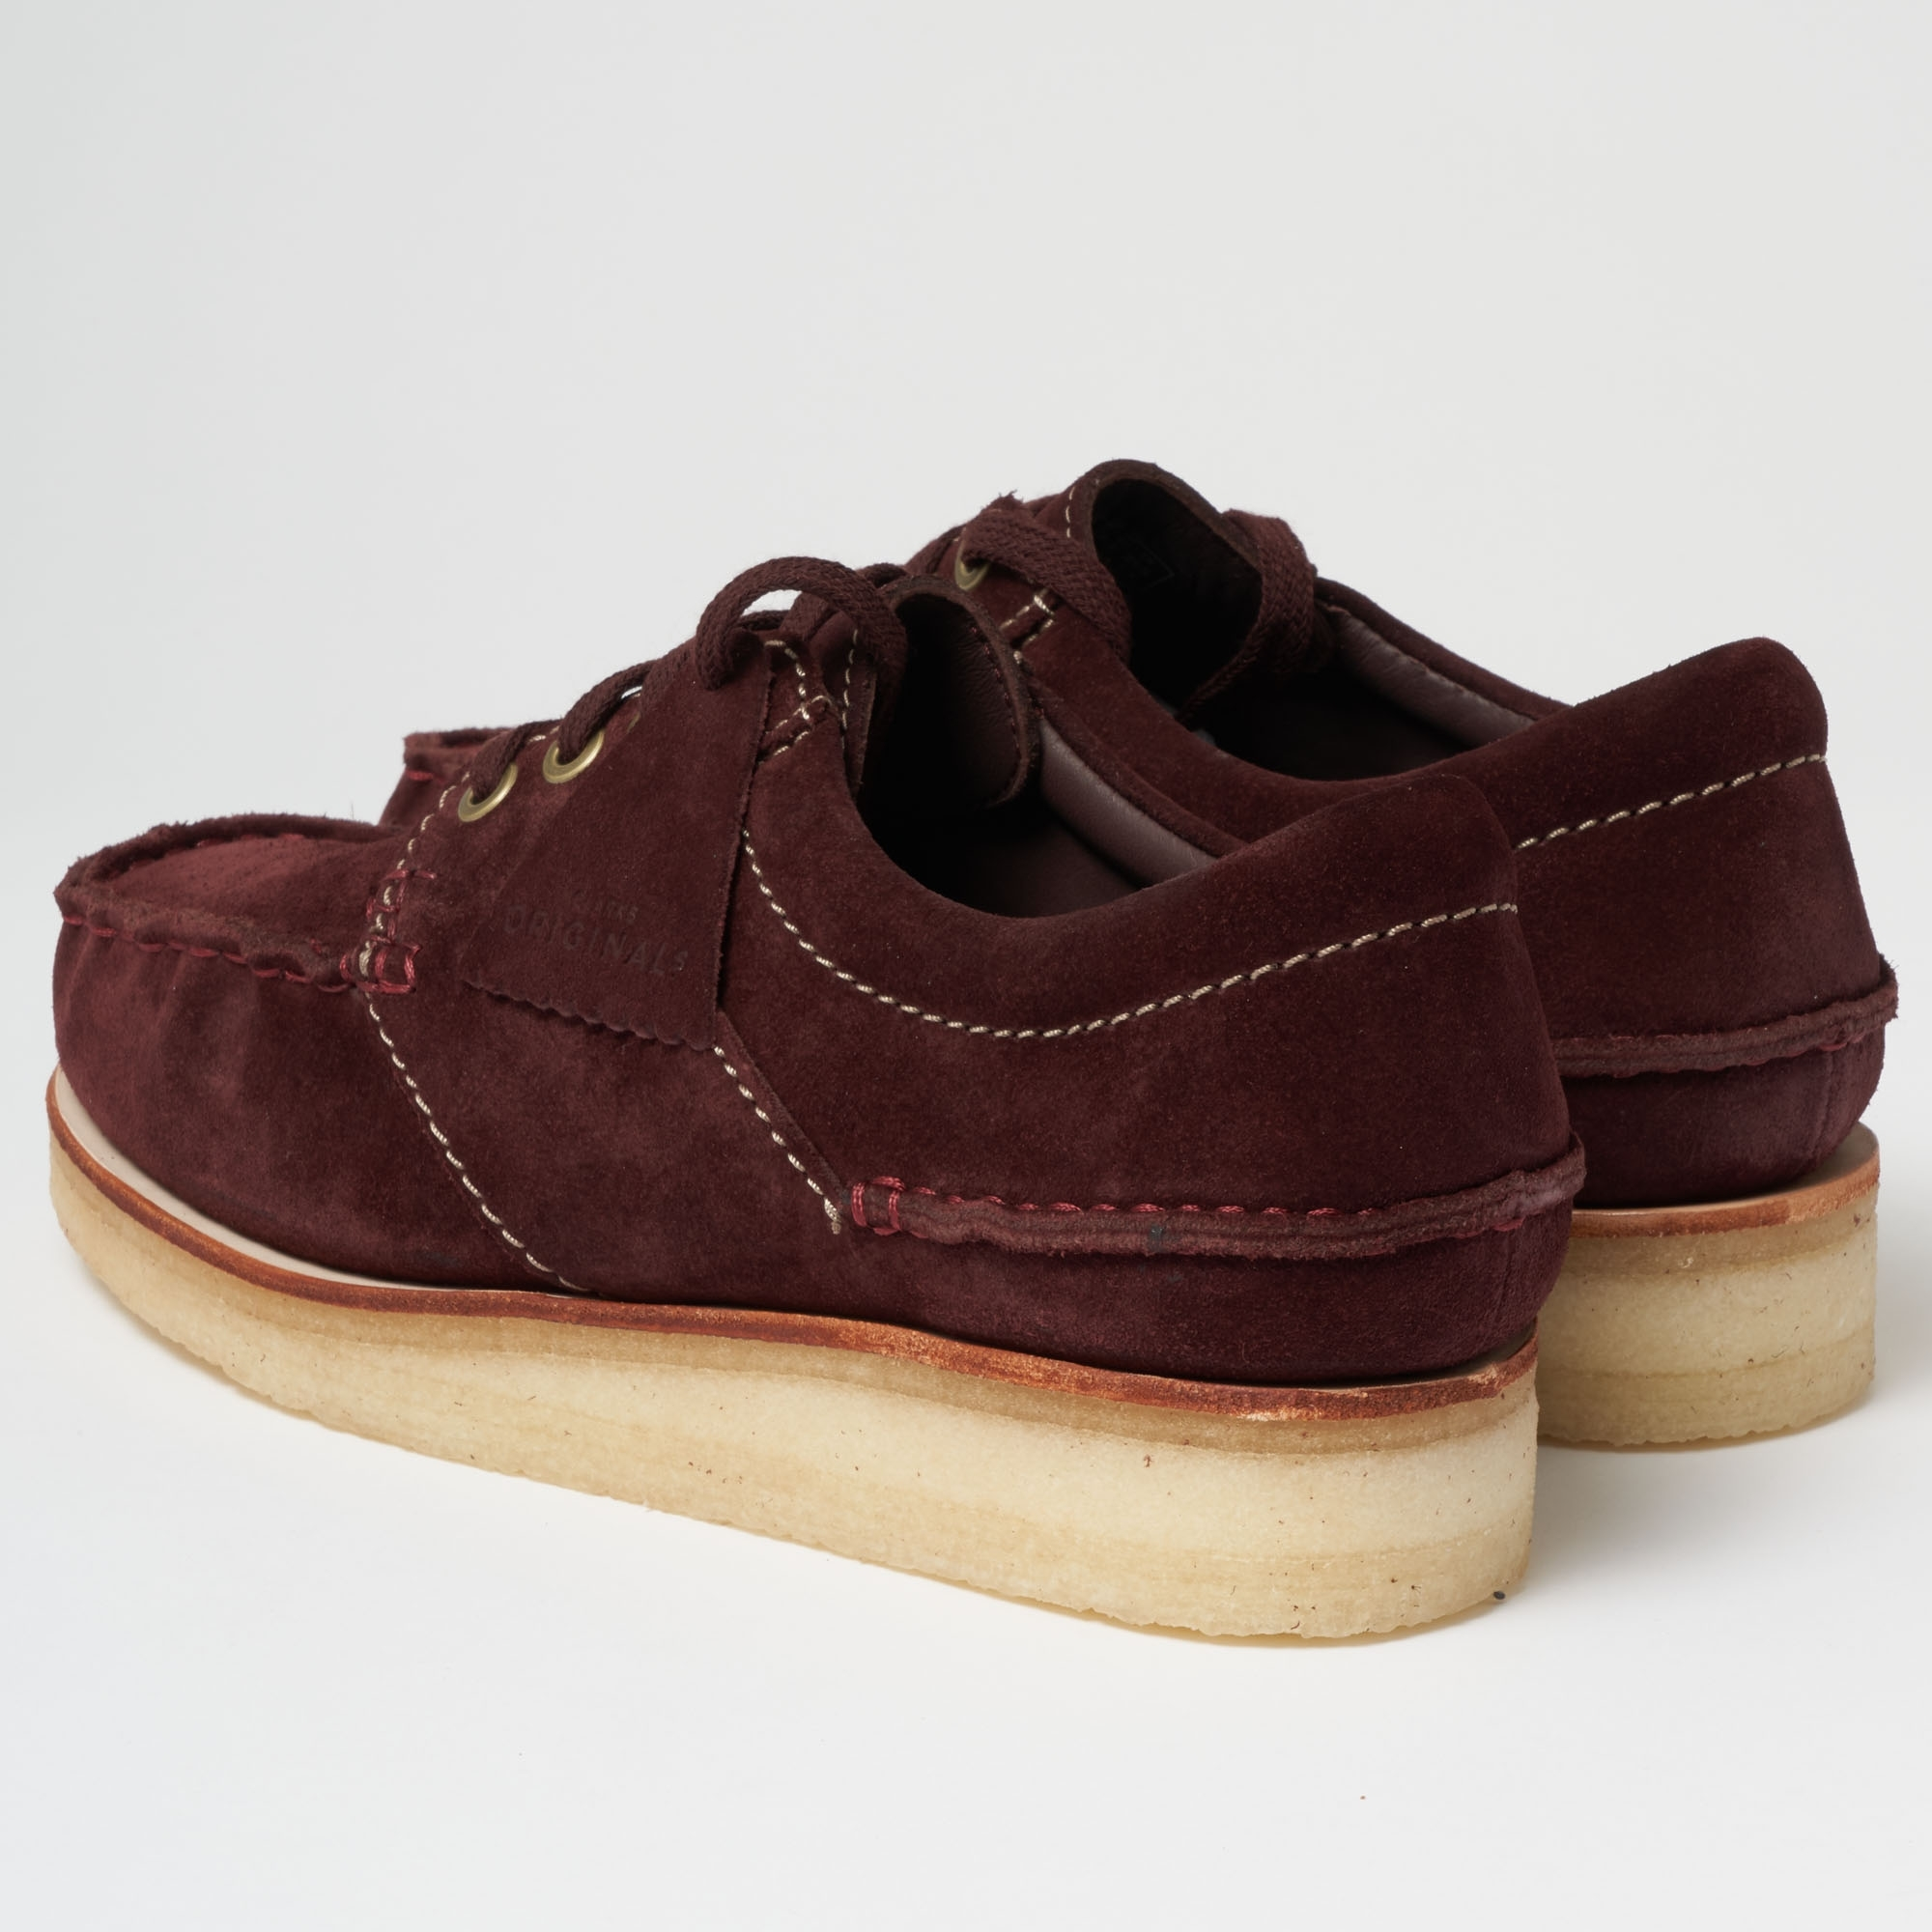 5541e793af7a8 Wallace Shoes - Burgundy